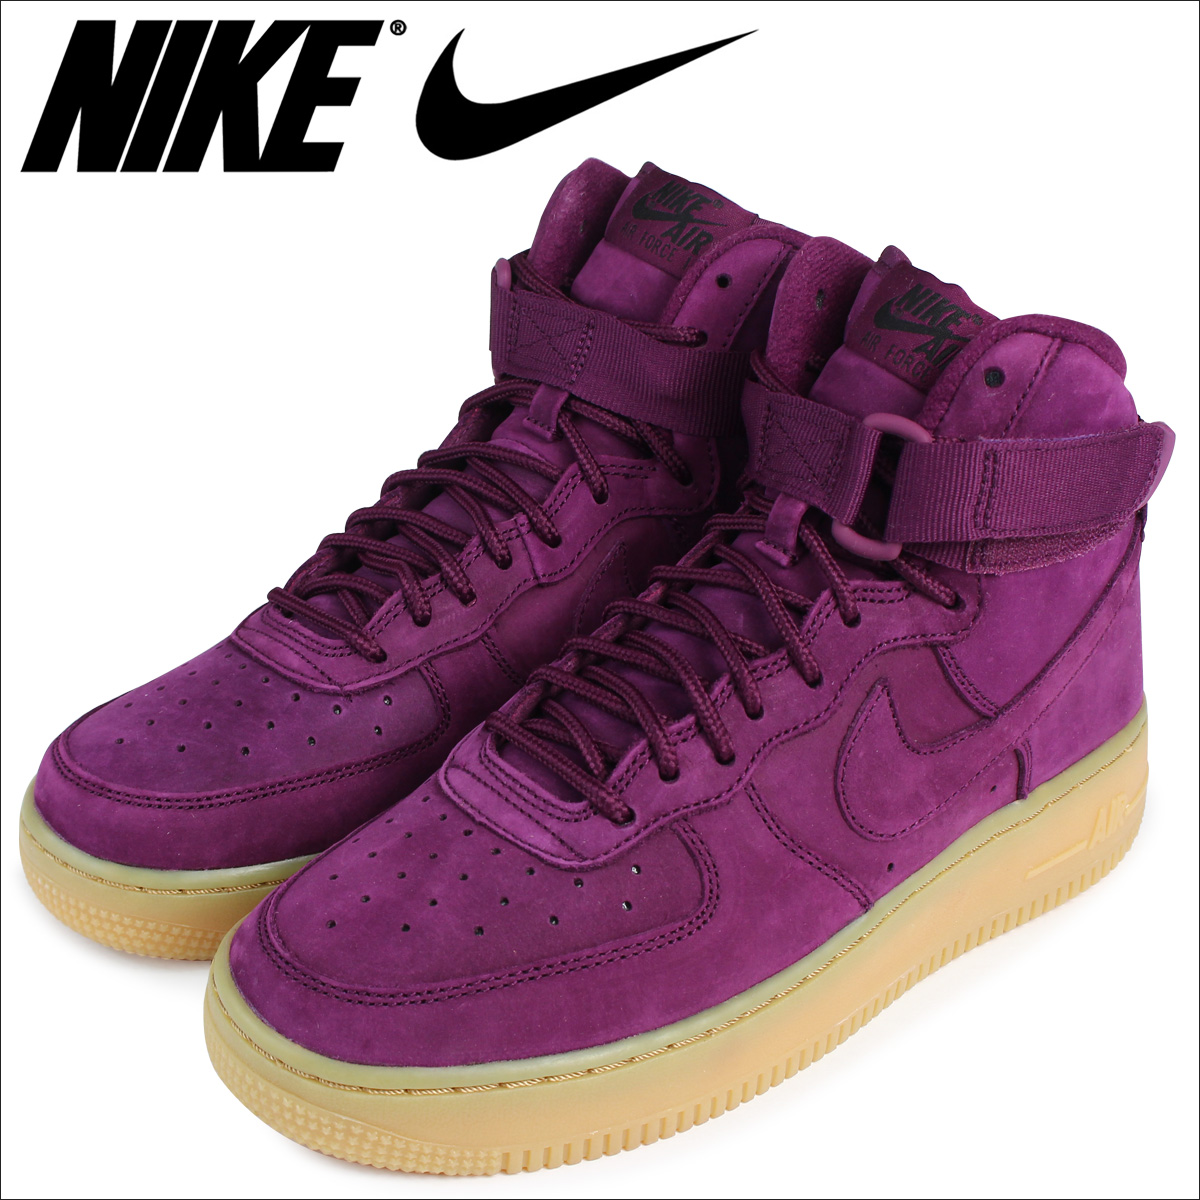 nike air force online shop romania